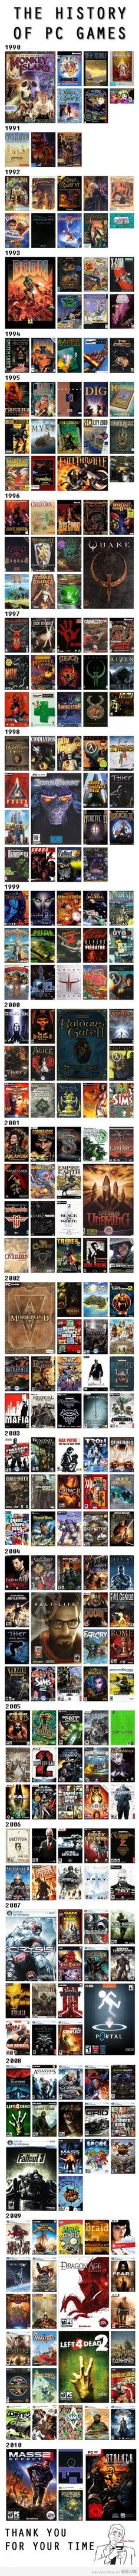 The History of PC games. Feel so OLD.